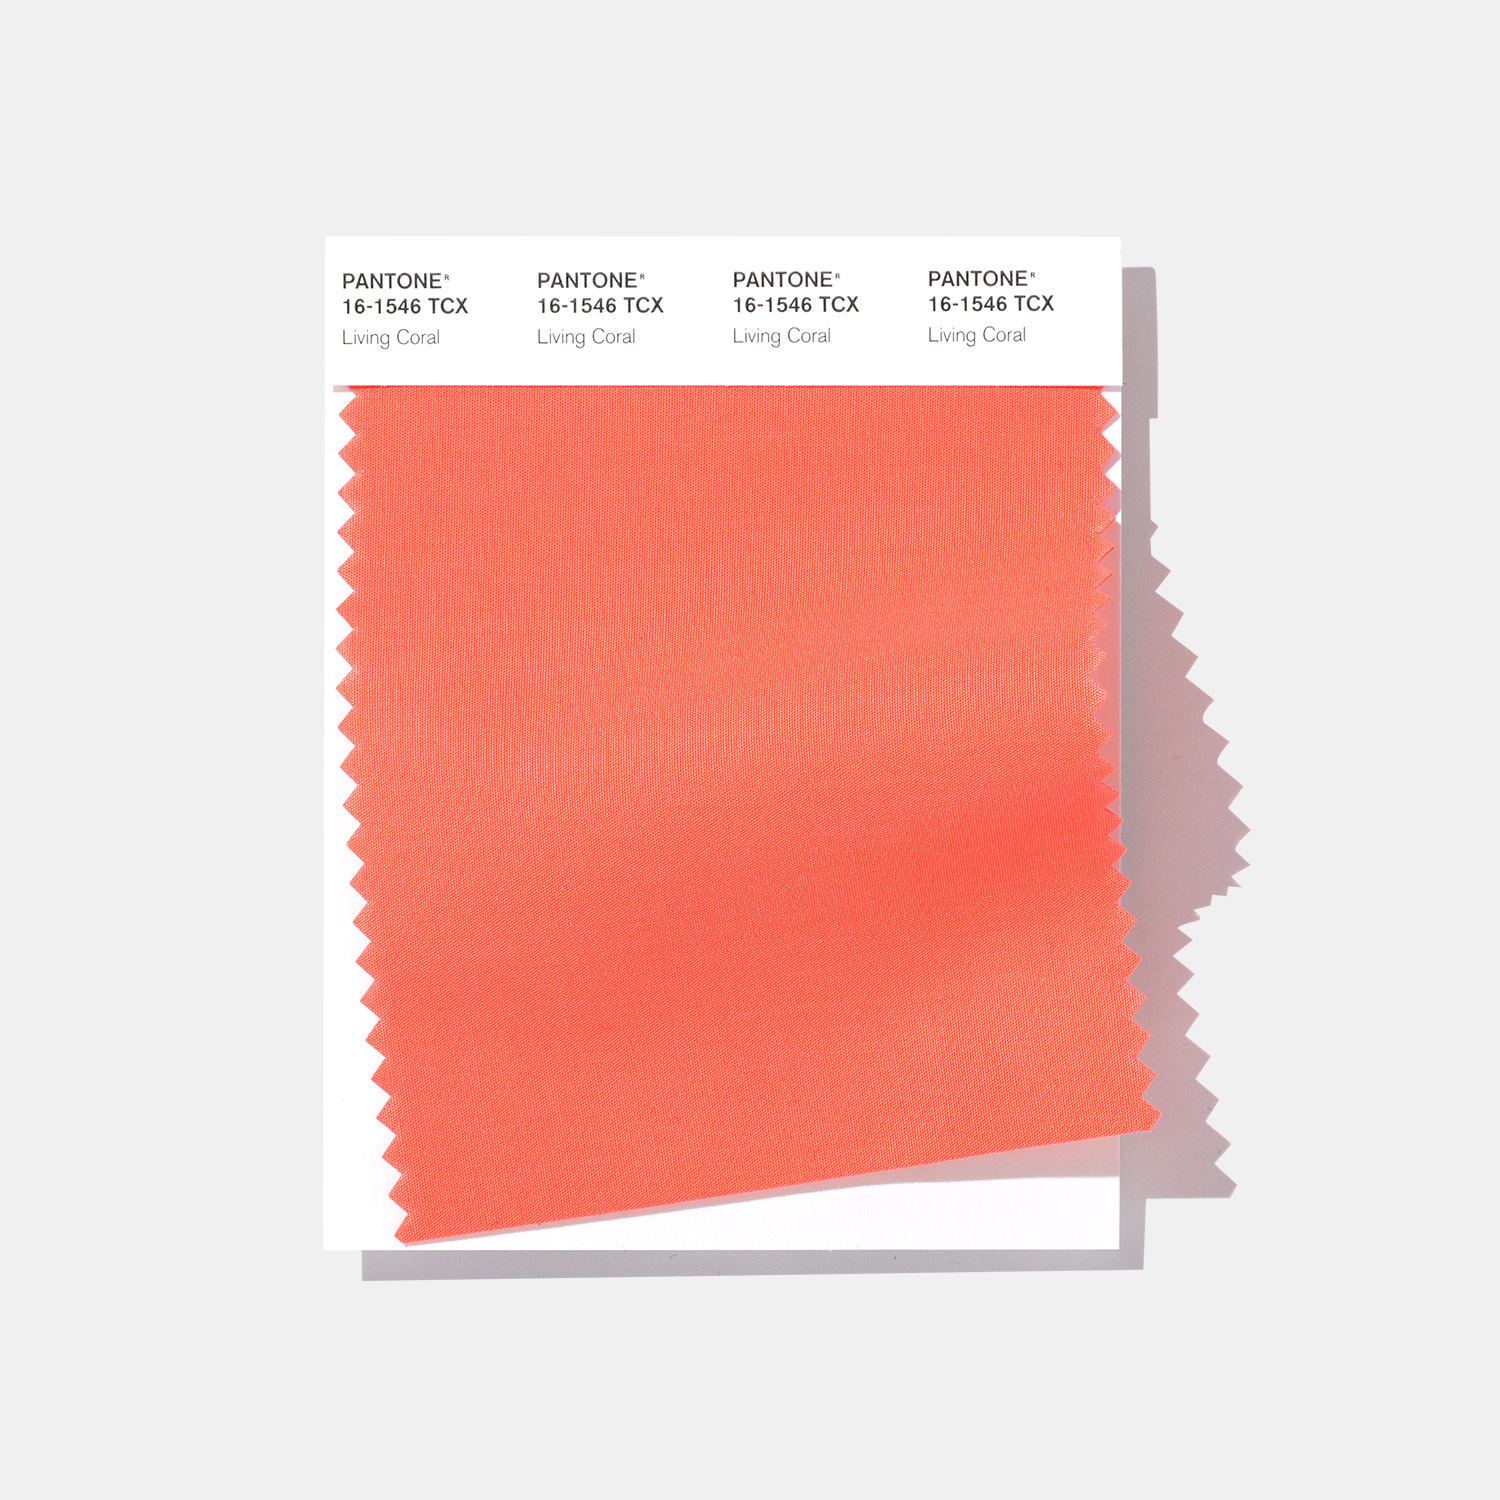 Pantone Farbe Des Jahres Pantone Color Of The Year 2019: Pantone 16-1546 Living